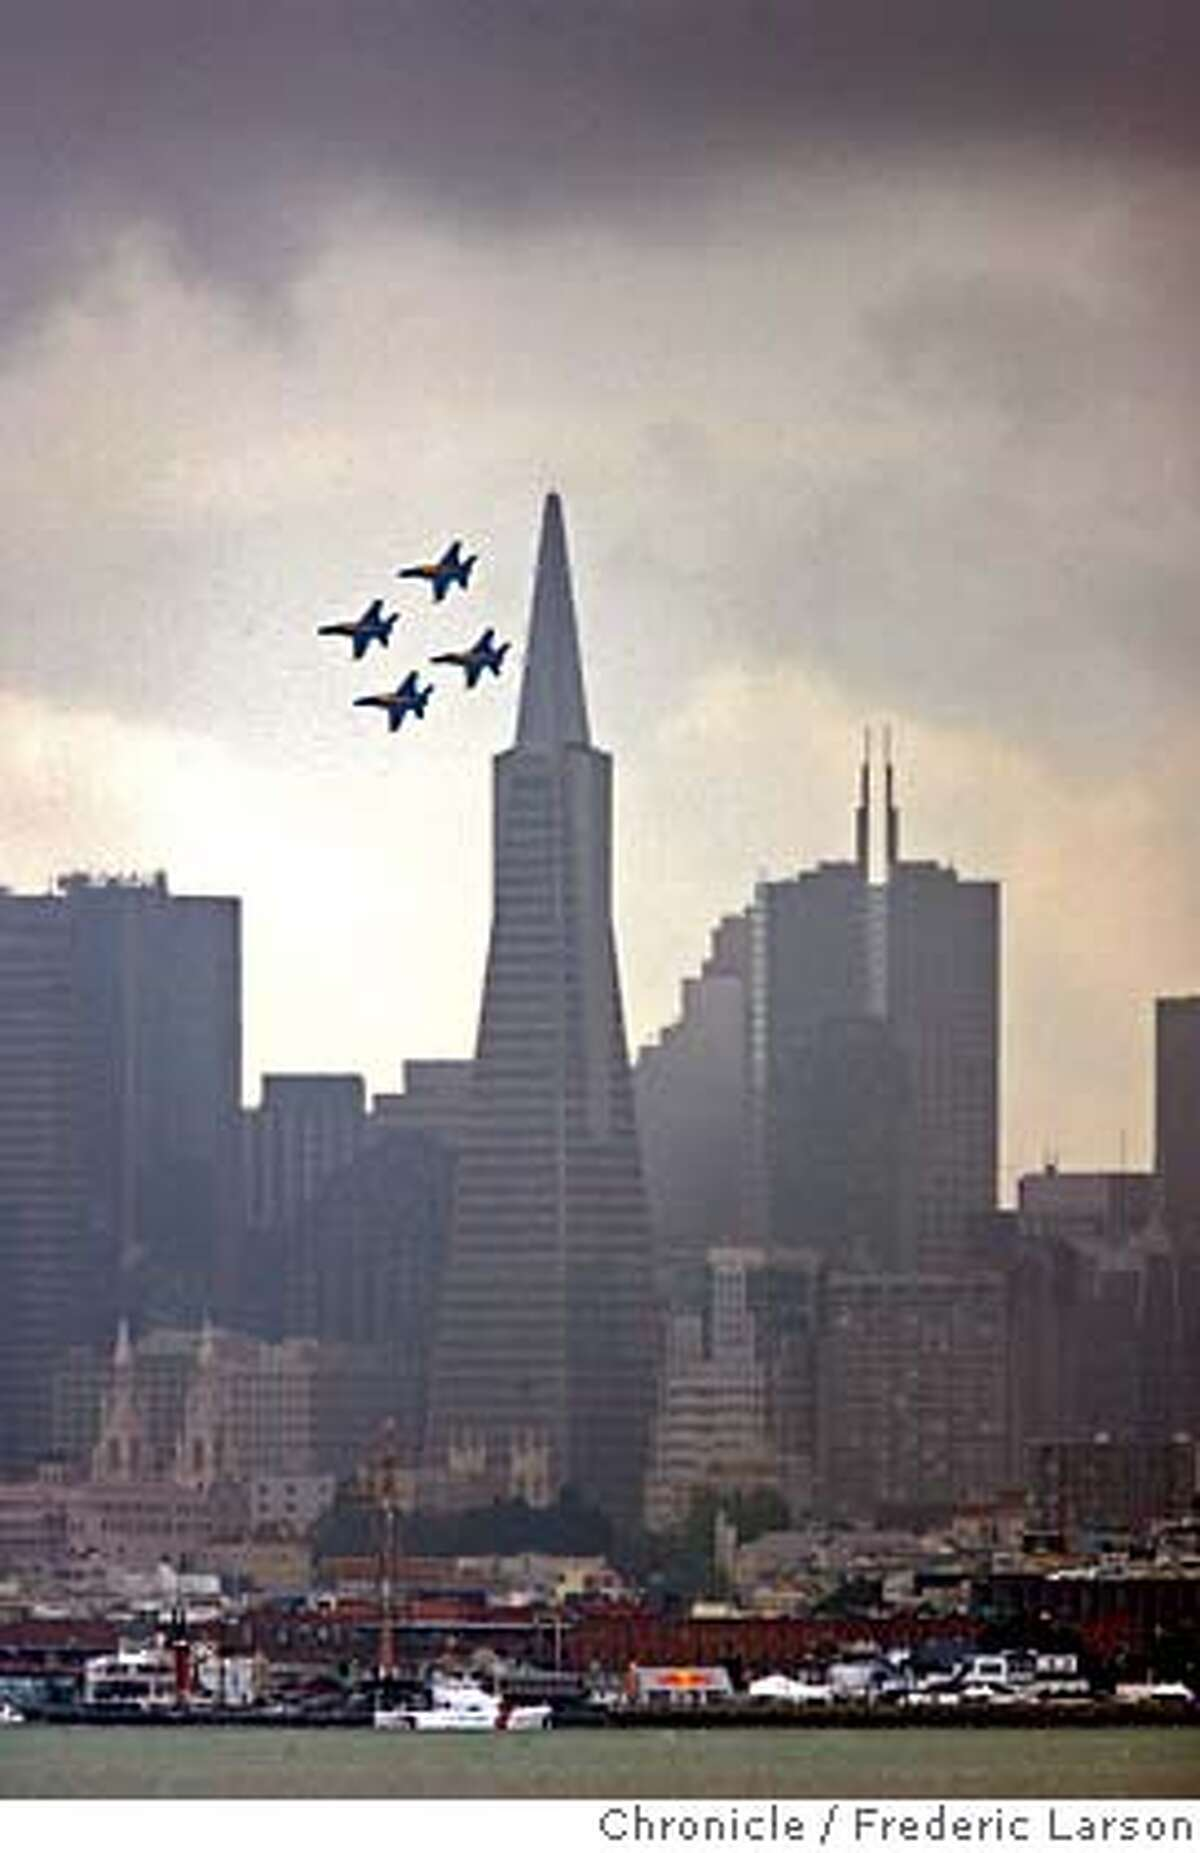 The Blue Angels fly over San Francisco, Thursday, Oct. 5, 2006, in preparation for fleet week and the 60th Anniversary of the US Navy Blue Angels. (AP Photo/San Francisco Chronicle, Fred Larson) ** NO SALES MAGS OUT MANDATORY CREDIT ** Ran on: 10-06-2006 The Blue Angels fly over San Francisco in preparation for Fleet Week and for the 60th anniversary of the U.S. Navys flight team. Ran on: 10-06-2006 The Blue Angels fly over San Francisco in preparation for Fleet Week and for the 60th anniversary of the U.S. Navys flight team. Ran on: 10-06-2006 The Blue Angels fly over San Francisco in preparation for Fleet Week and for the 60th anniversary of the U.S. Navys flight team. Ran on: 10-06-2006 The Blue Angels fly over San Francisco in preparation for Fleet Week and for the 60th anniversary of the U.S. Navys flight team. NO SALES MAGS OUT MANDATORY CREDIT